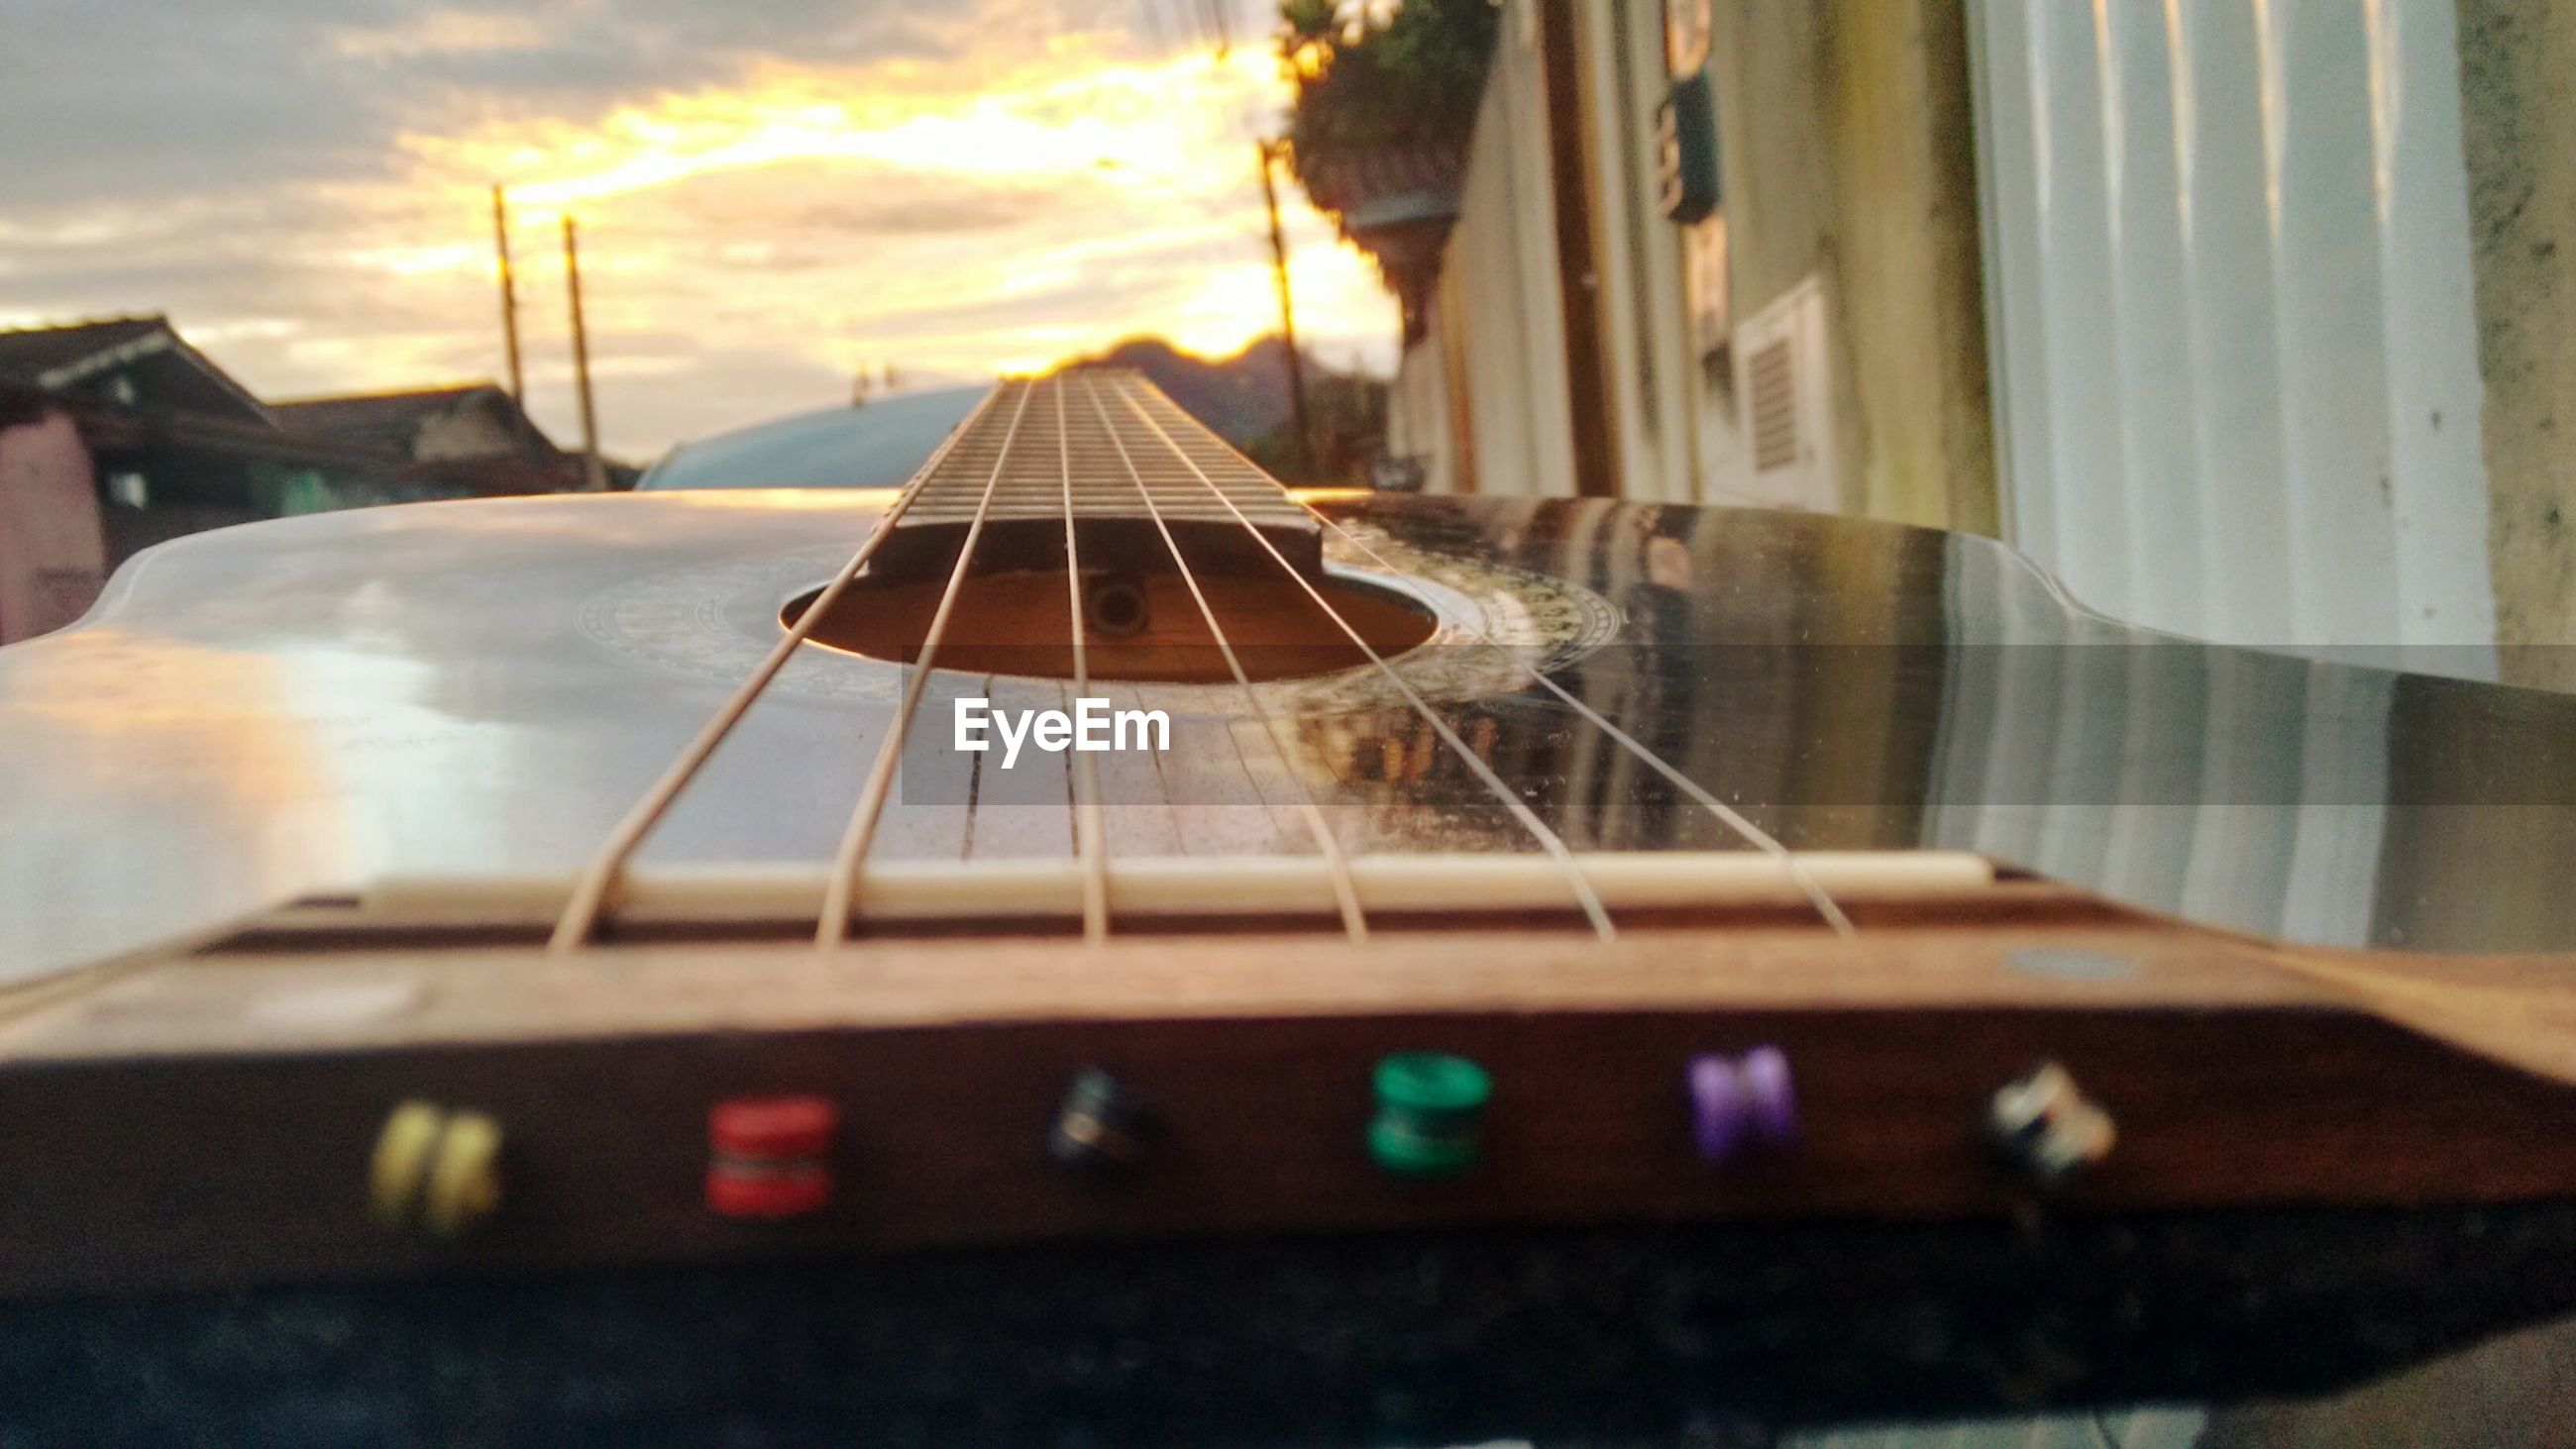 Close-up of guitar against sky during sunset